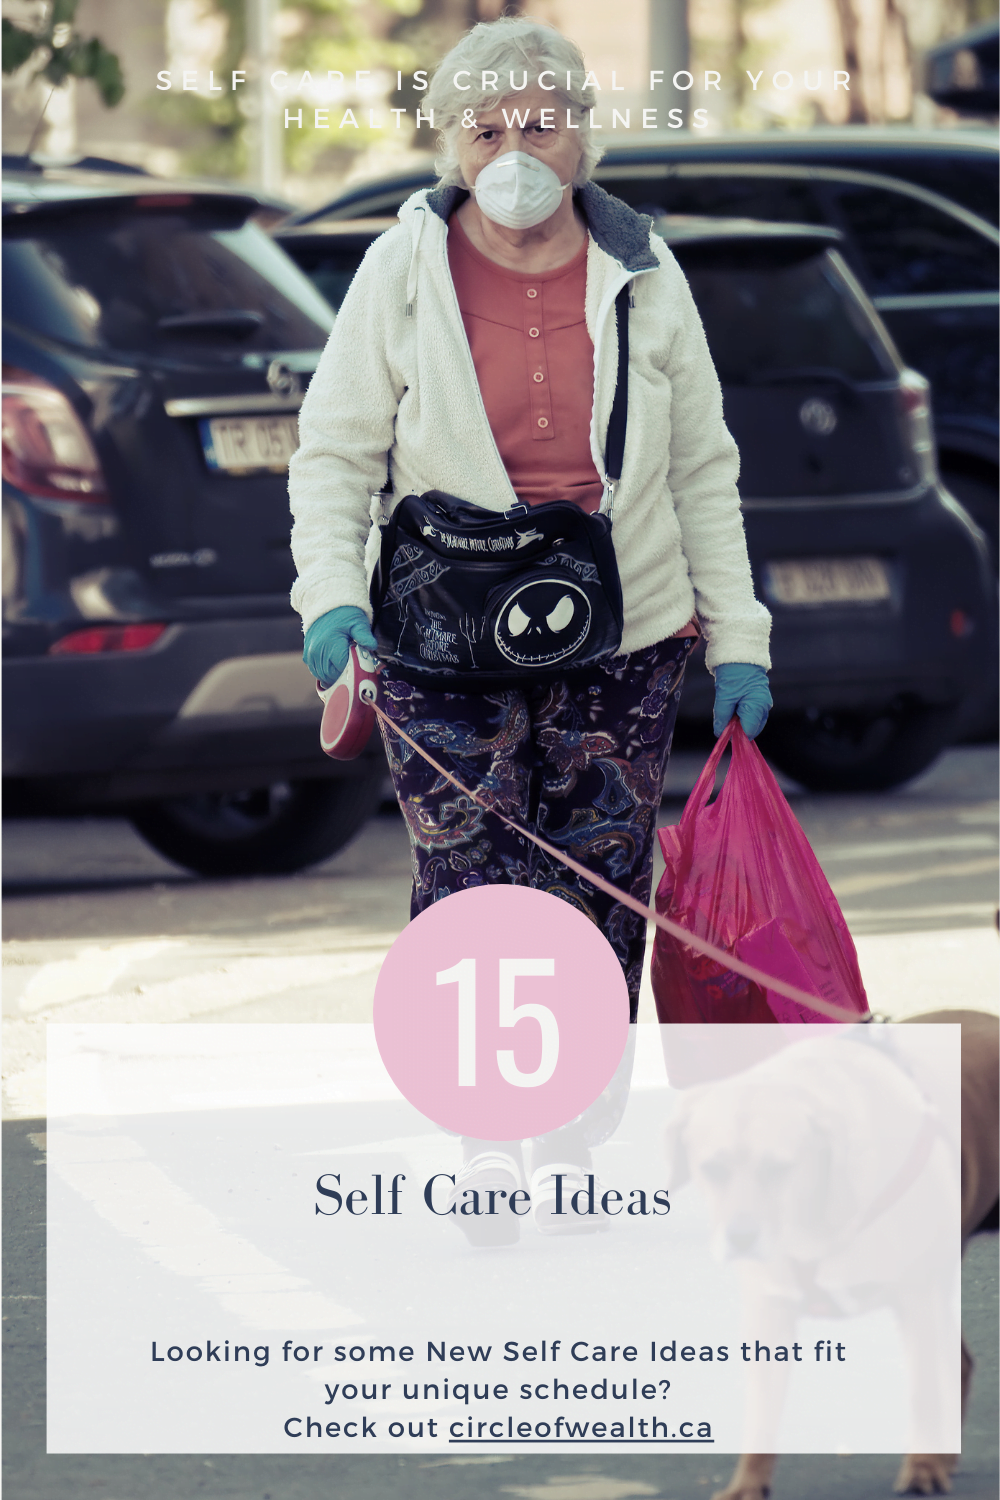 Self Care Ideas during Covid